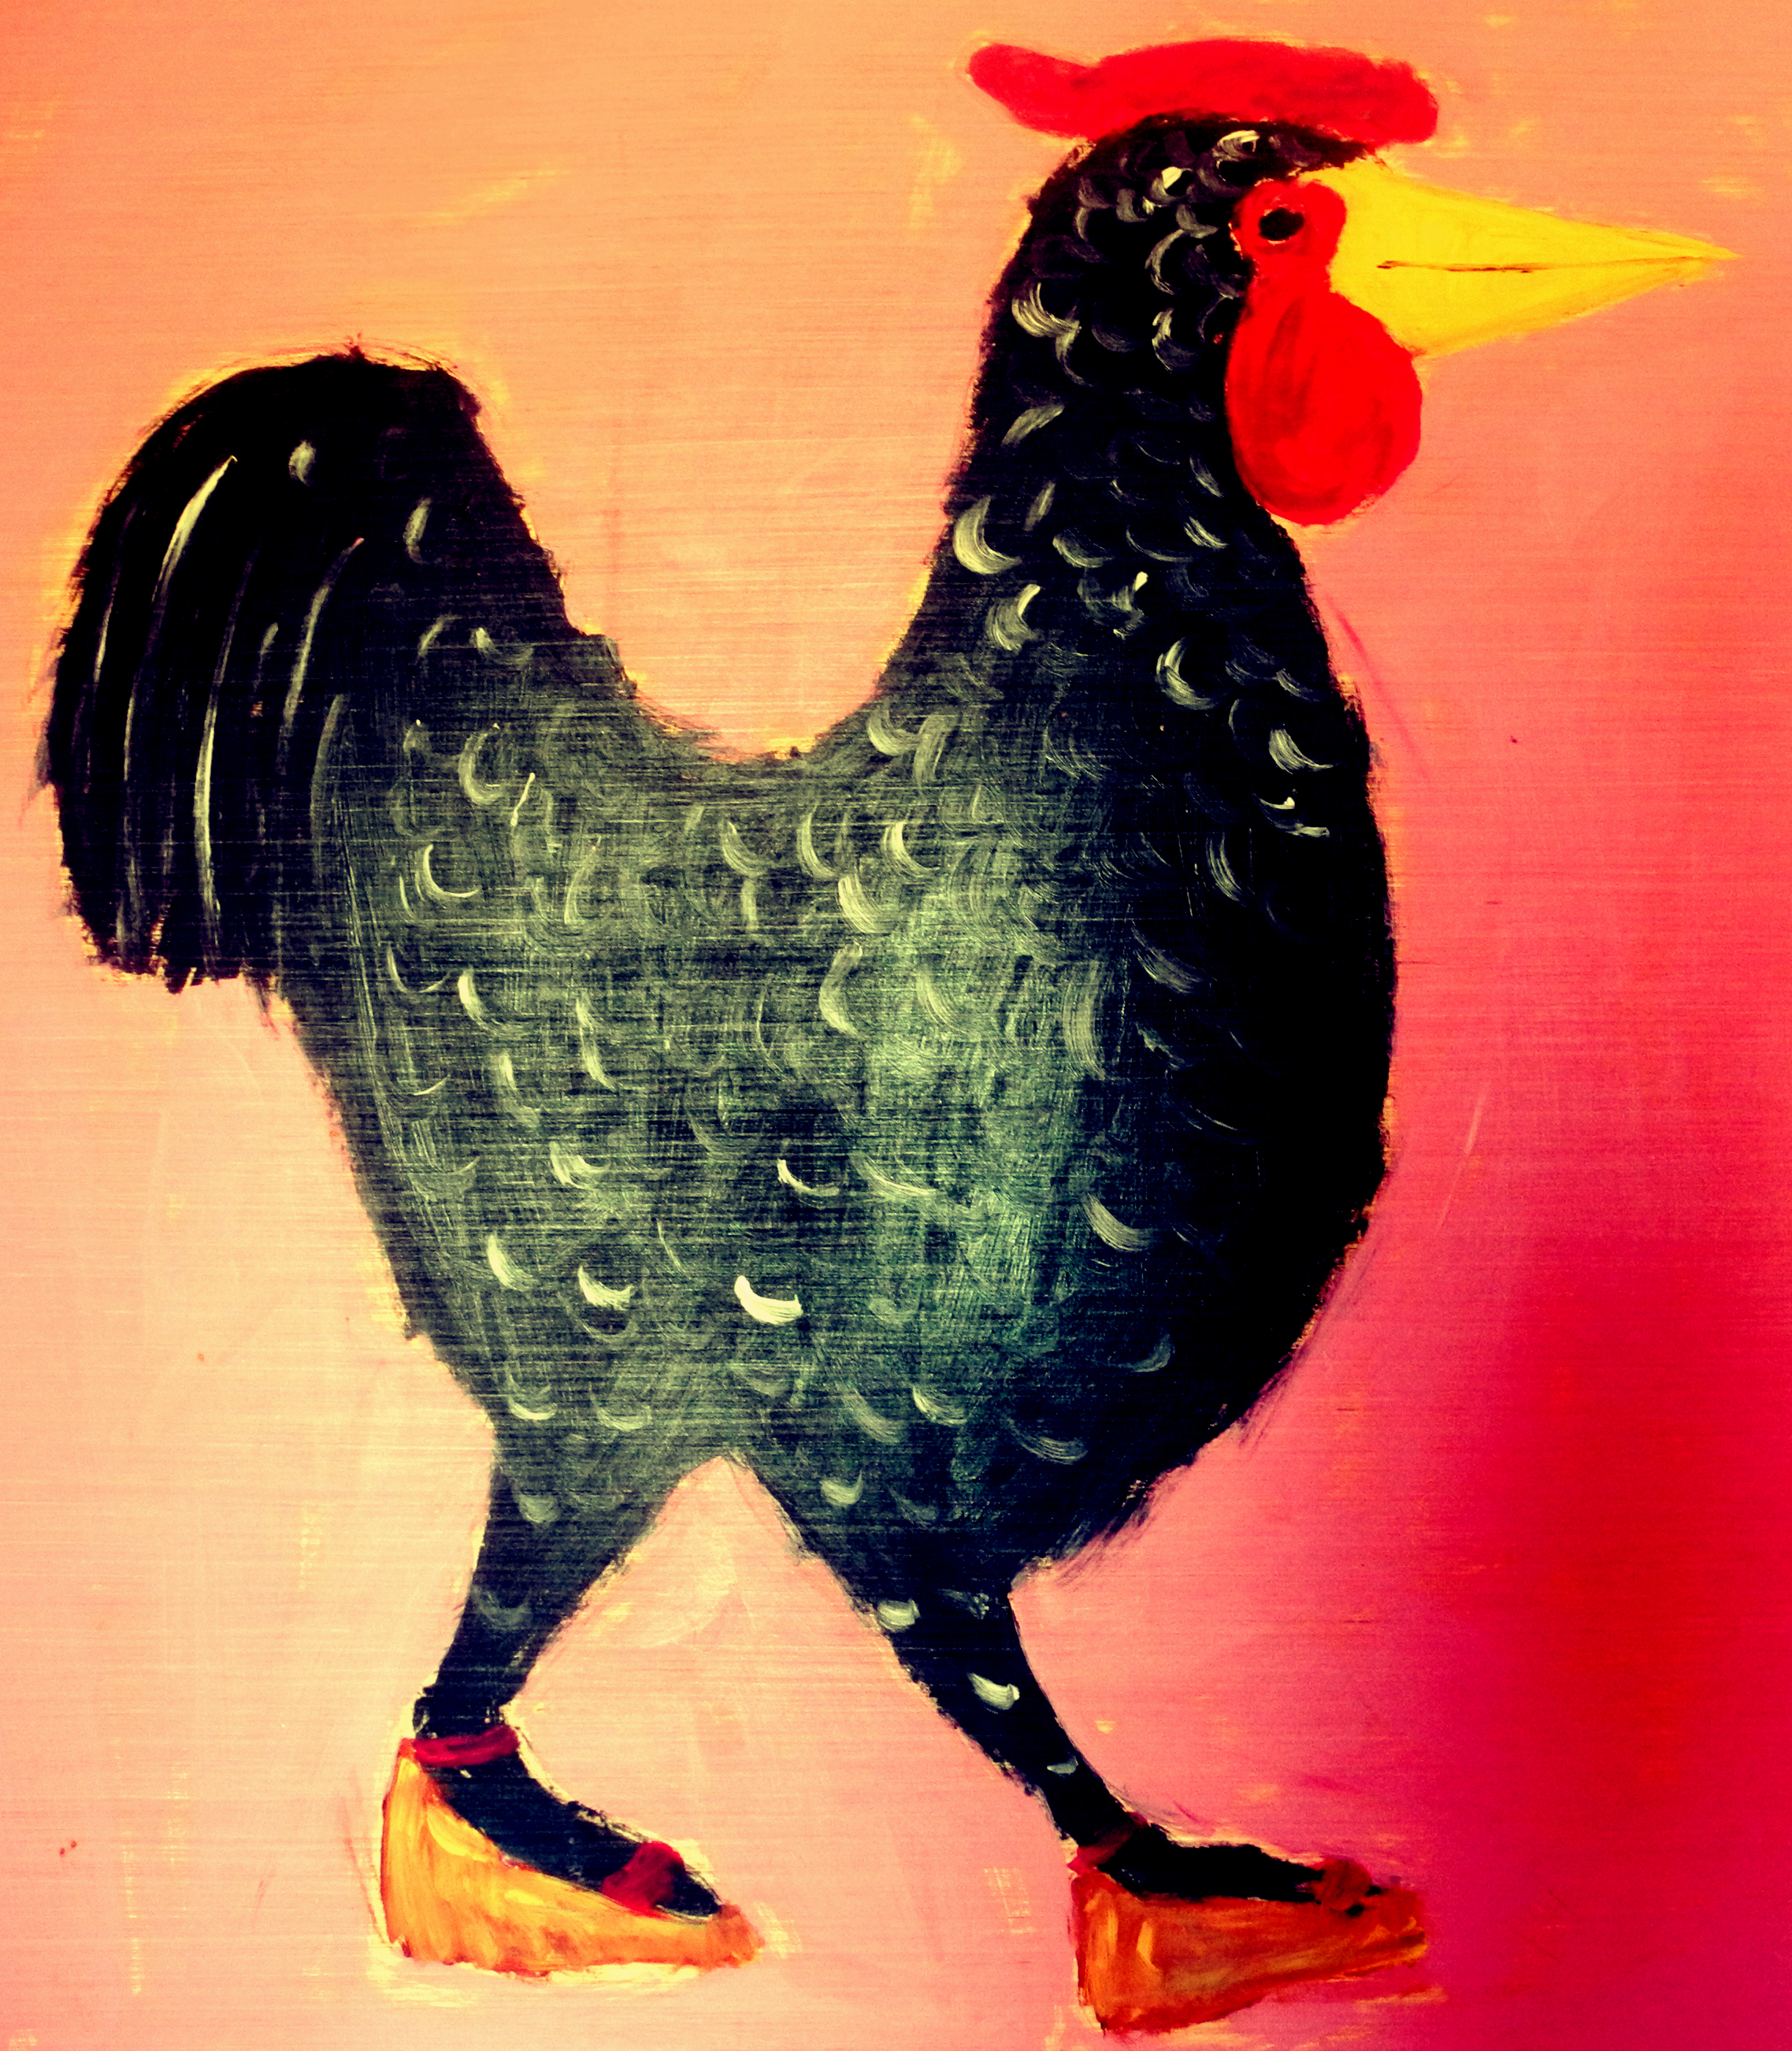 ©Rooster by Earl Swanagan, 2015.